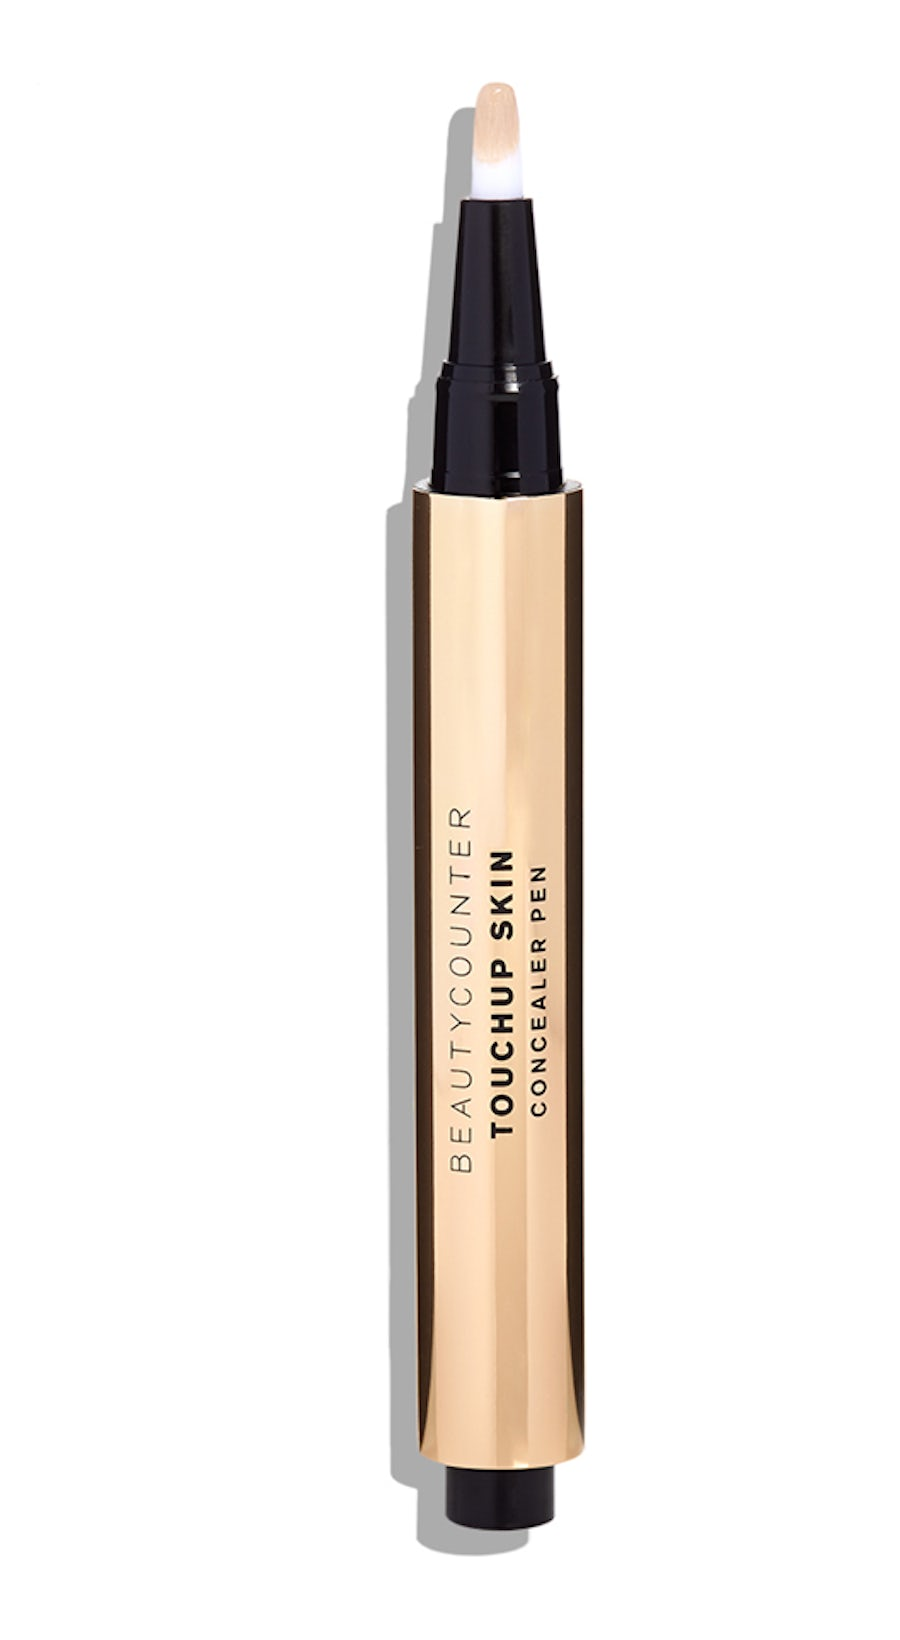 Beauty Counter concealer pen beauty products the wardrobe consultant